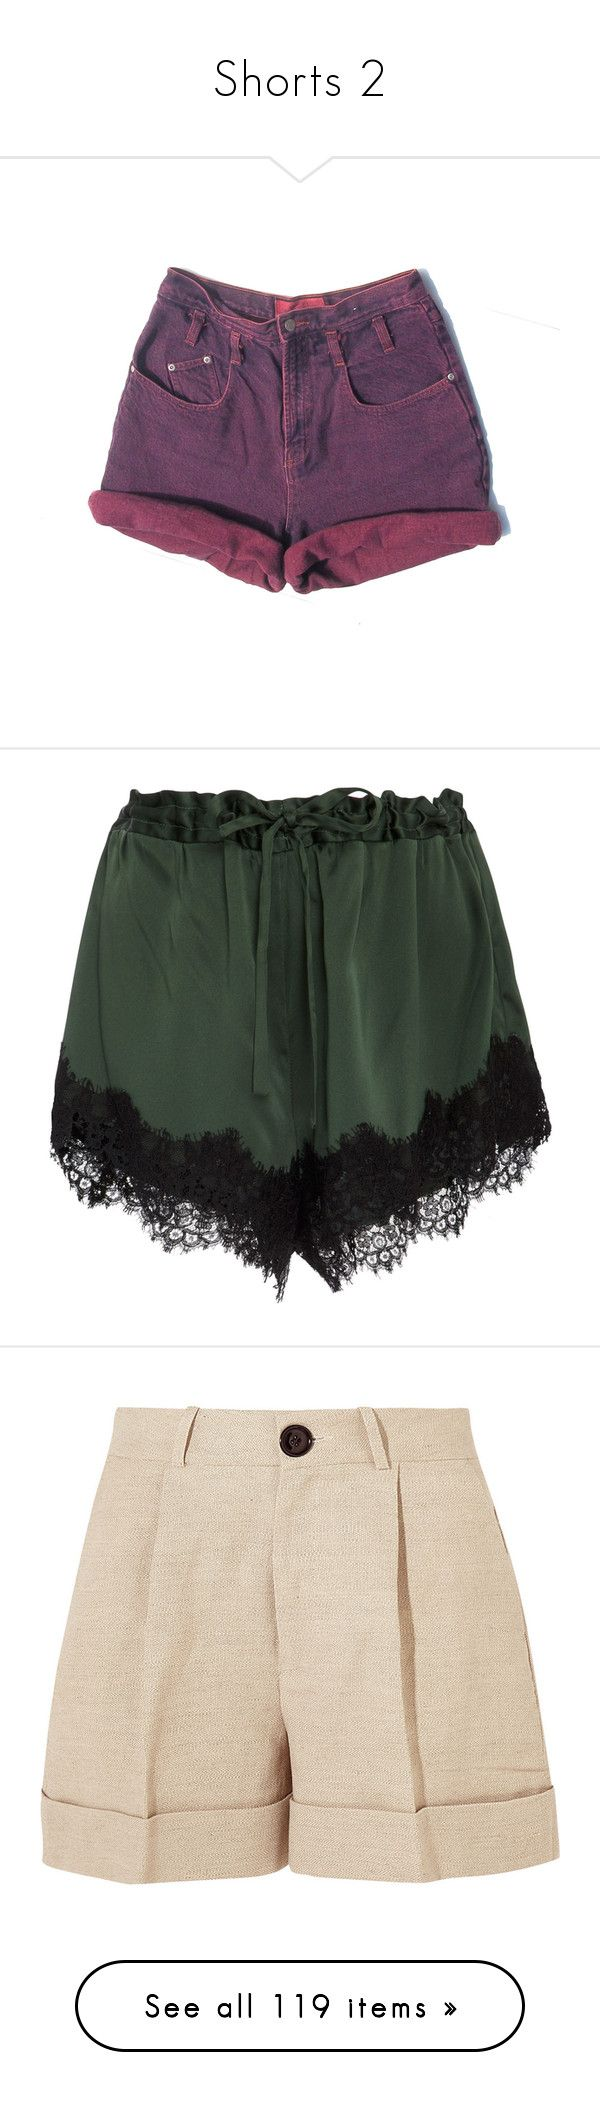 """""""Shorts 2"""" by x-star-dust-x ❤ liked on Polyvore featuring shorts, bottoms, pajamas, suit, green, macgraw, short, pants, beige and beige shorts"""